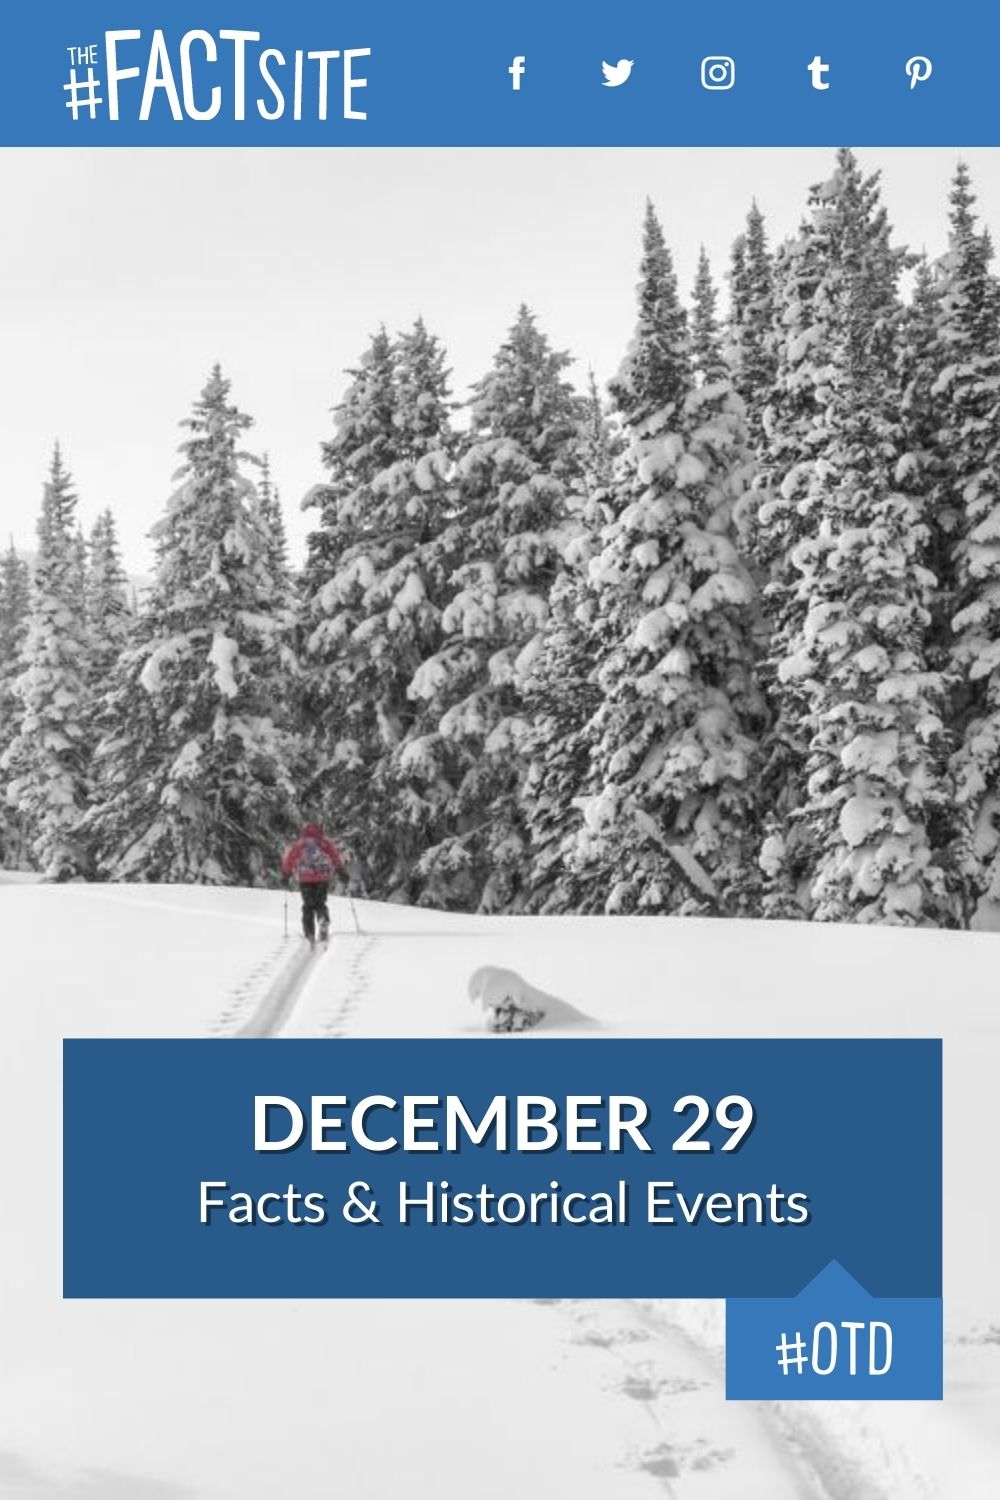 Facts & Historic Events That Happened on December 29